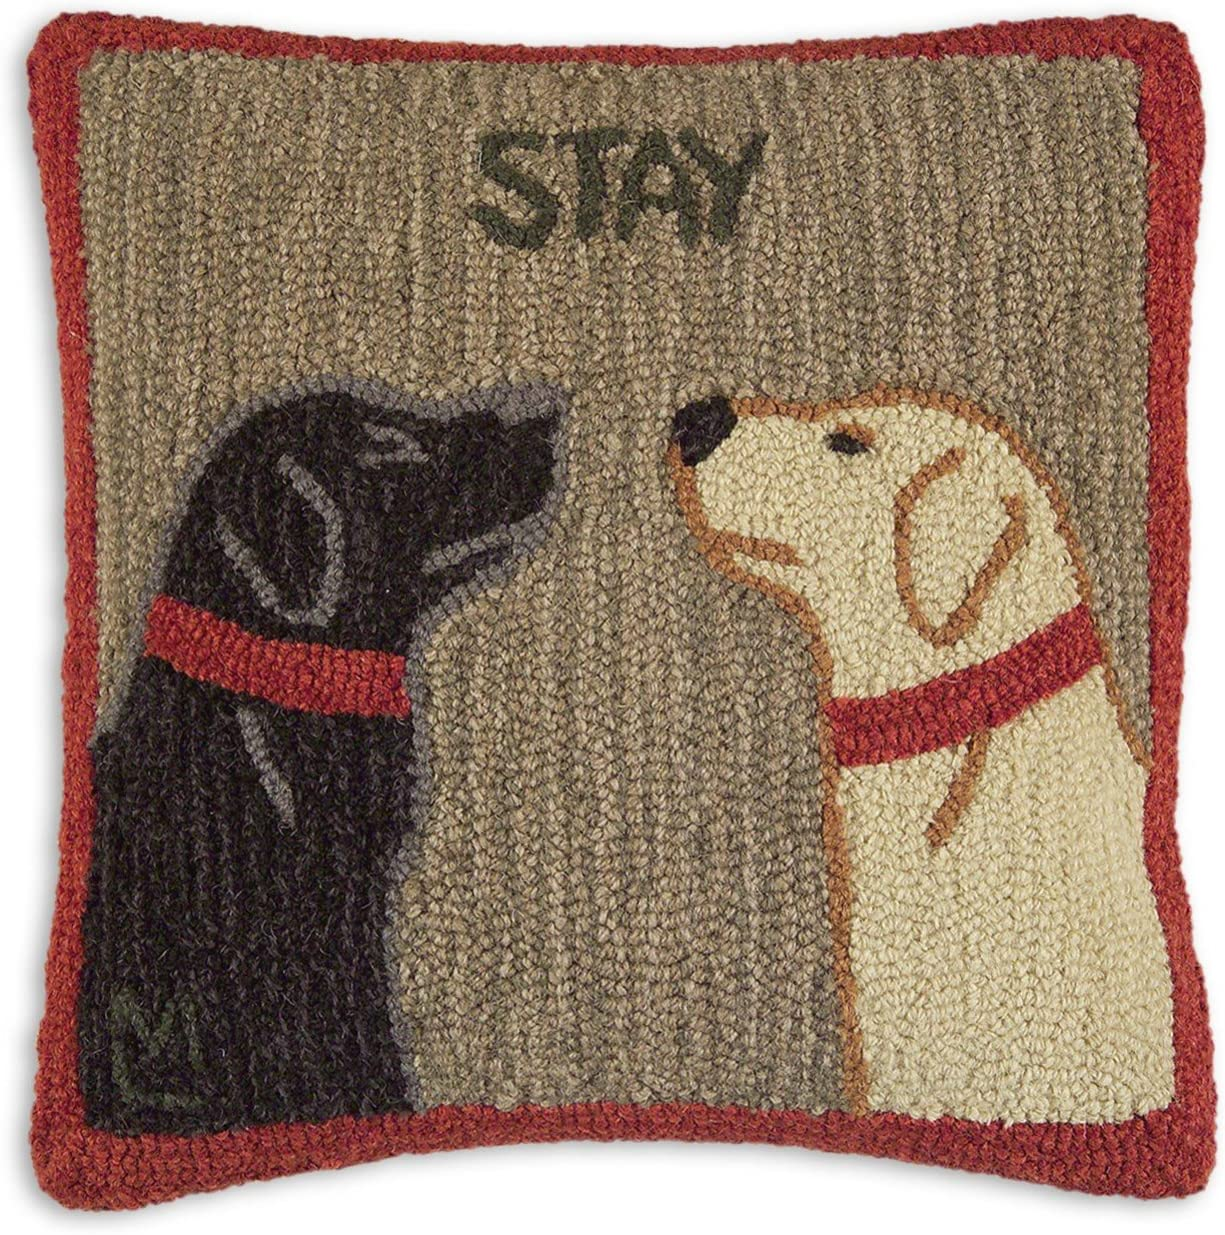 Chandler 4 Corners Artist-Designed Good Dogs Staying Hand-Hooked Wool Decorative Throw Pillow 18 x 18